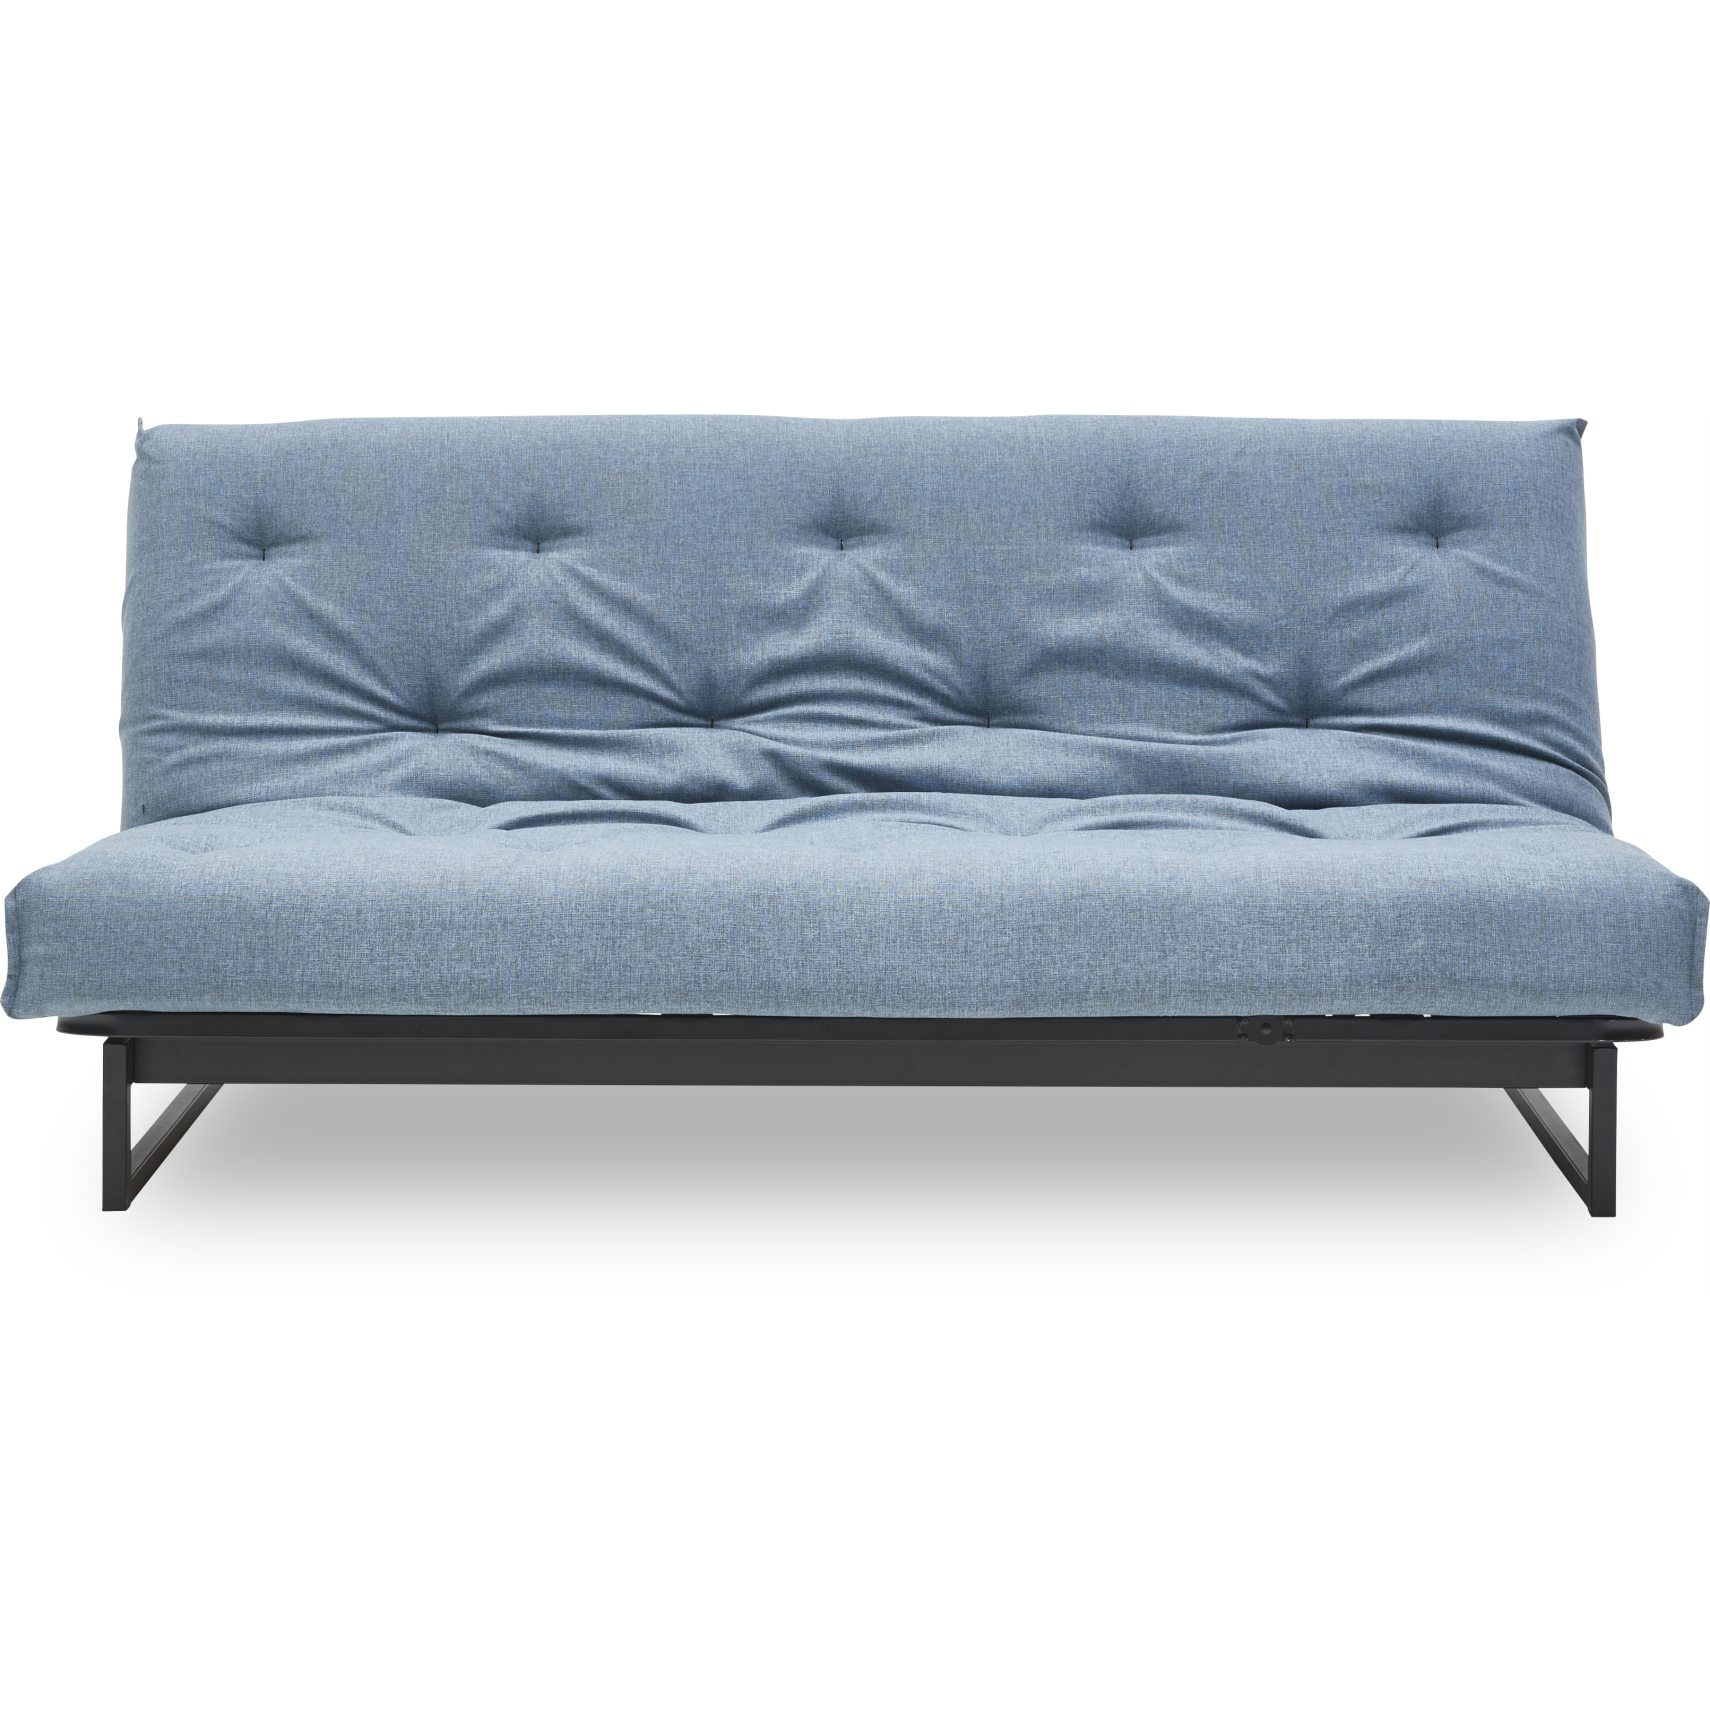 Fraction New Sovesofa stel - mat sort